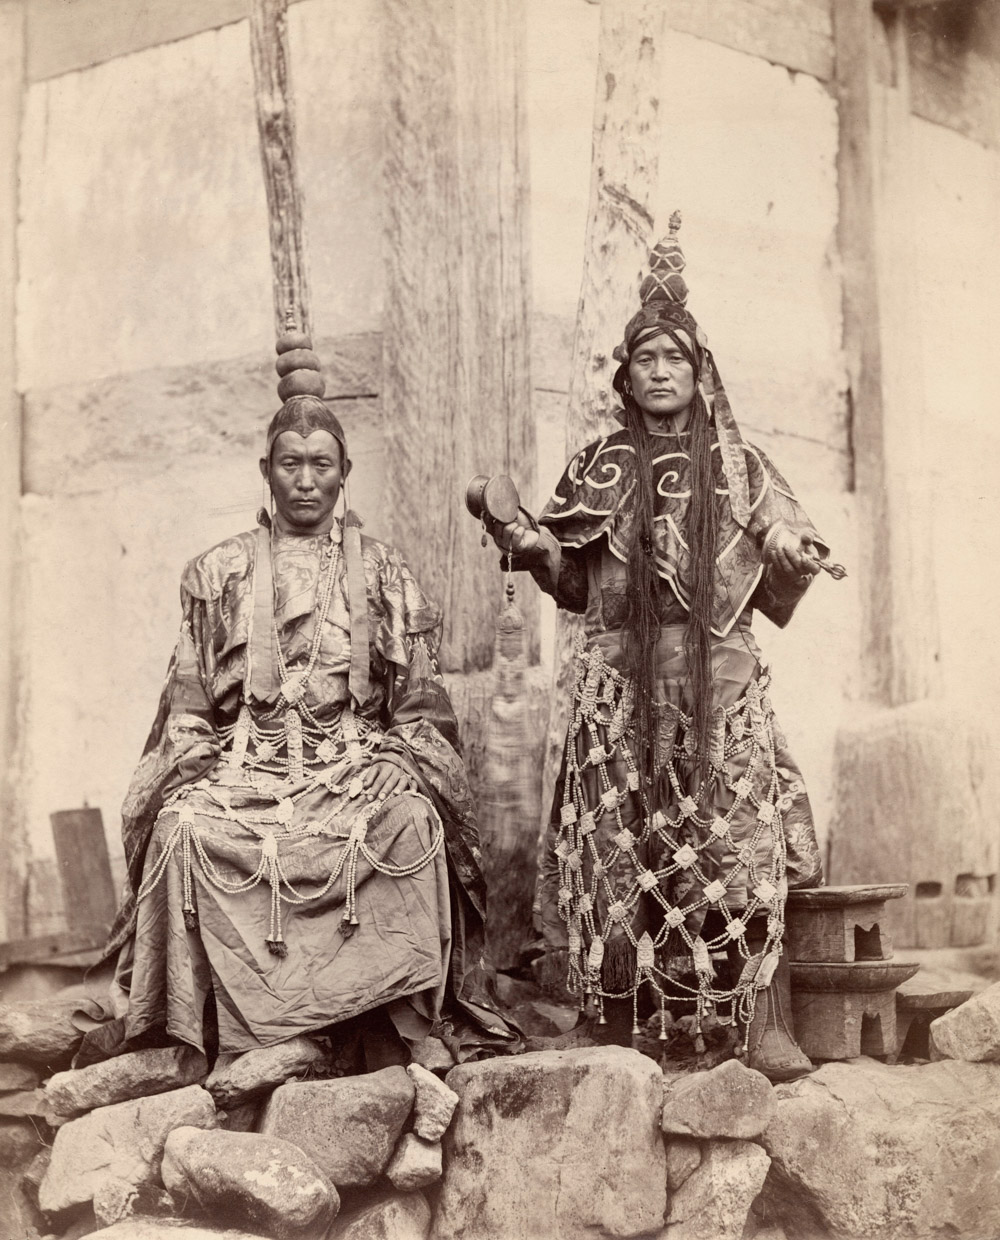 Lamas at Talung in Sikkim, East India. Johnston and Hoffman, Photograph, Sikkim, India, 1897. (c) Royal Geographical Society.